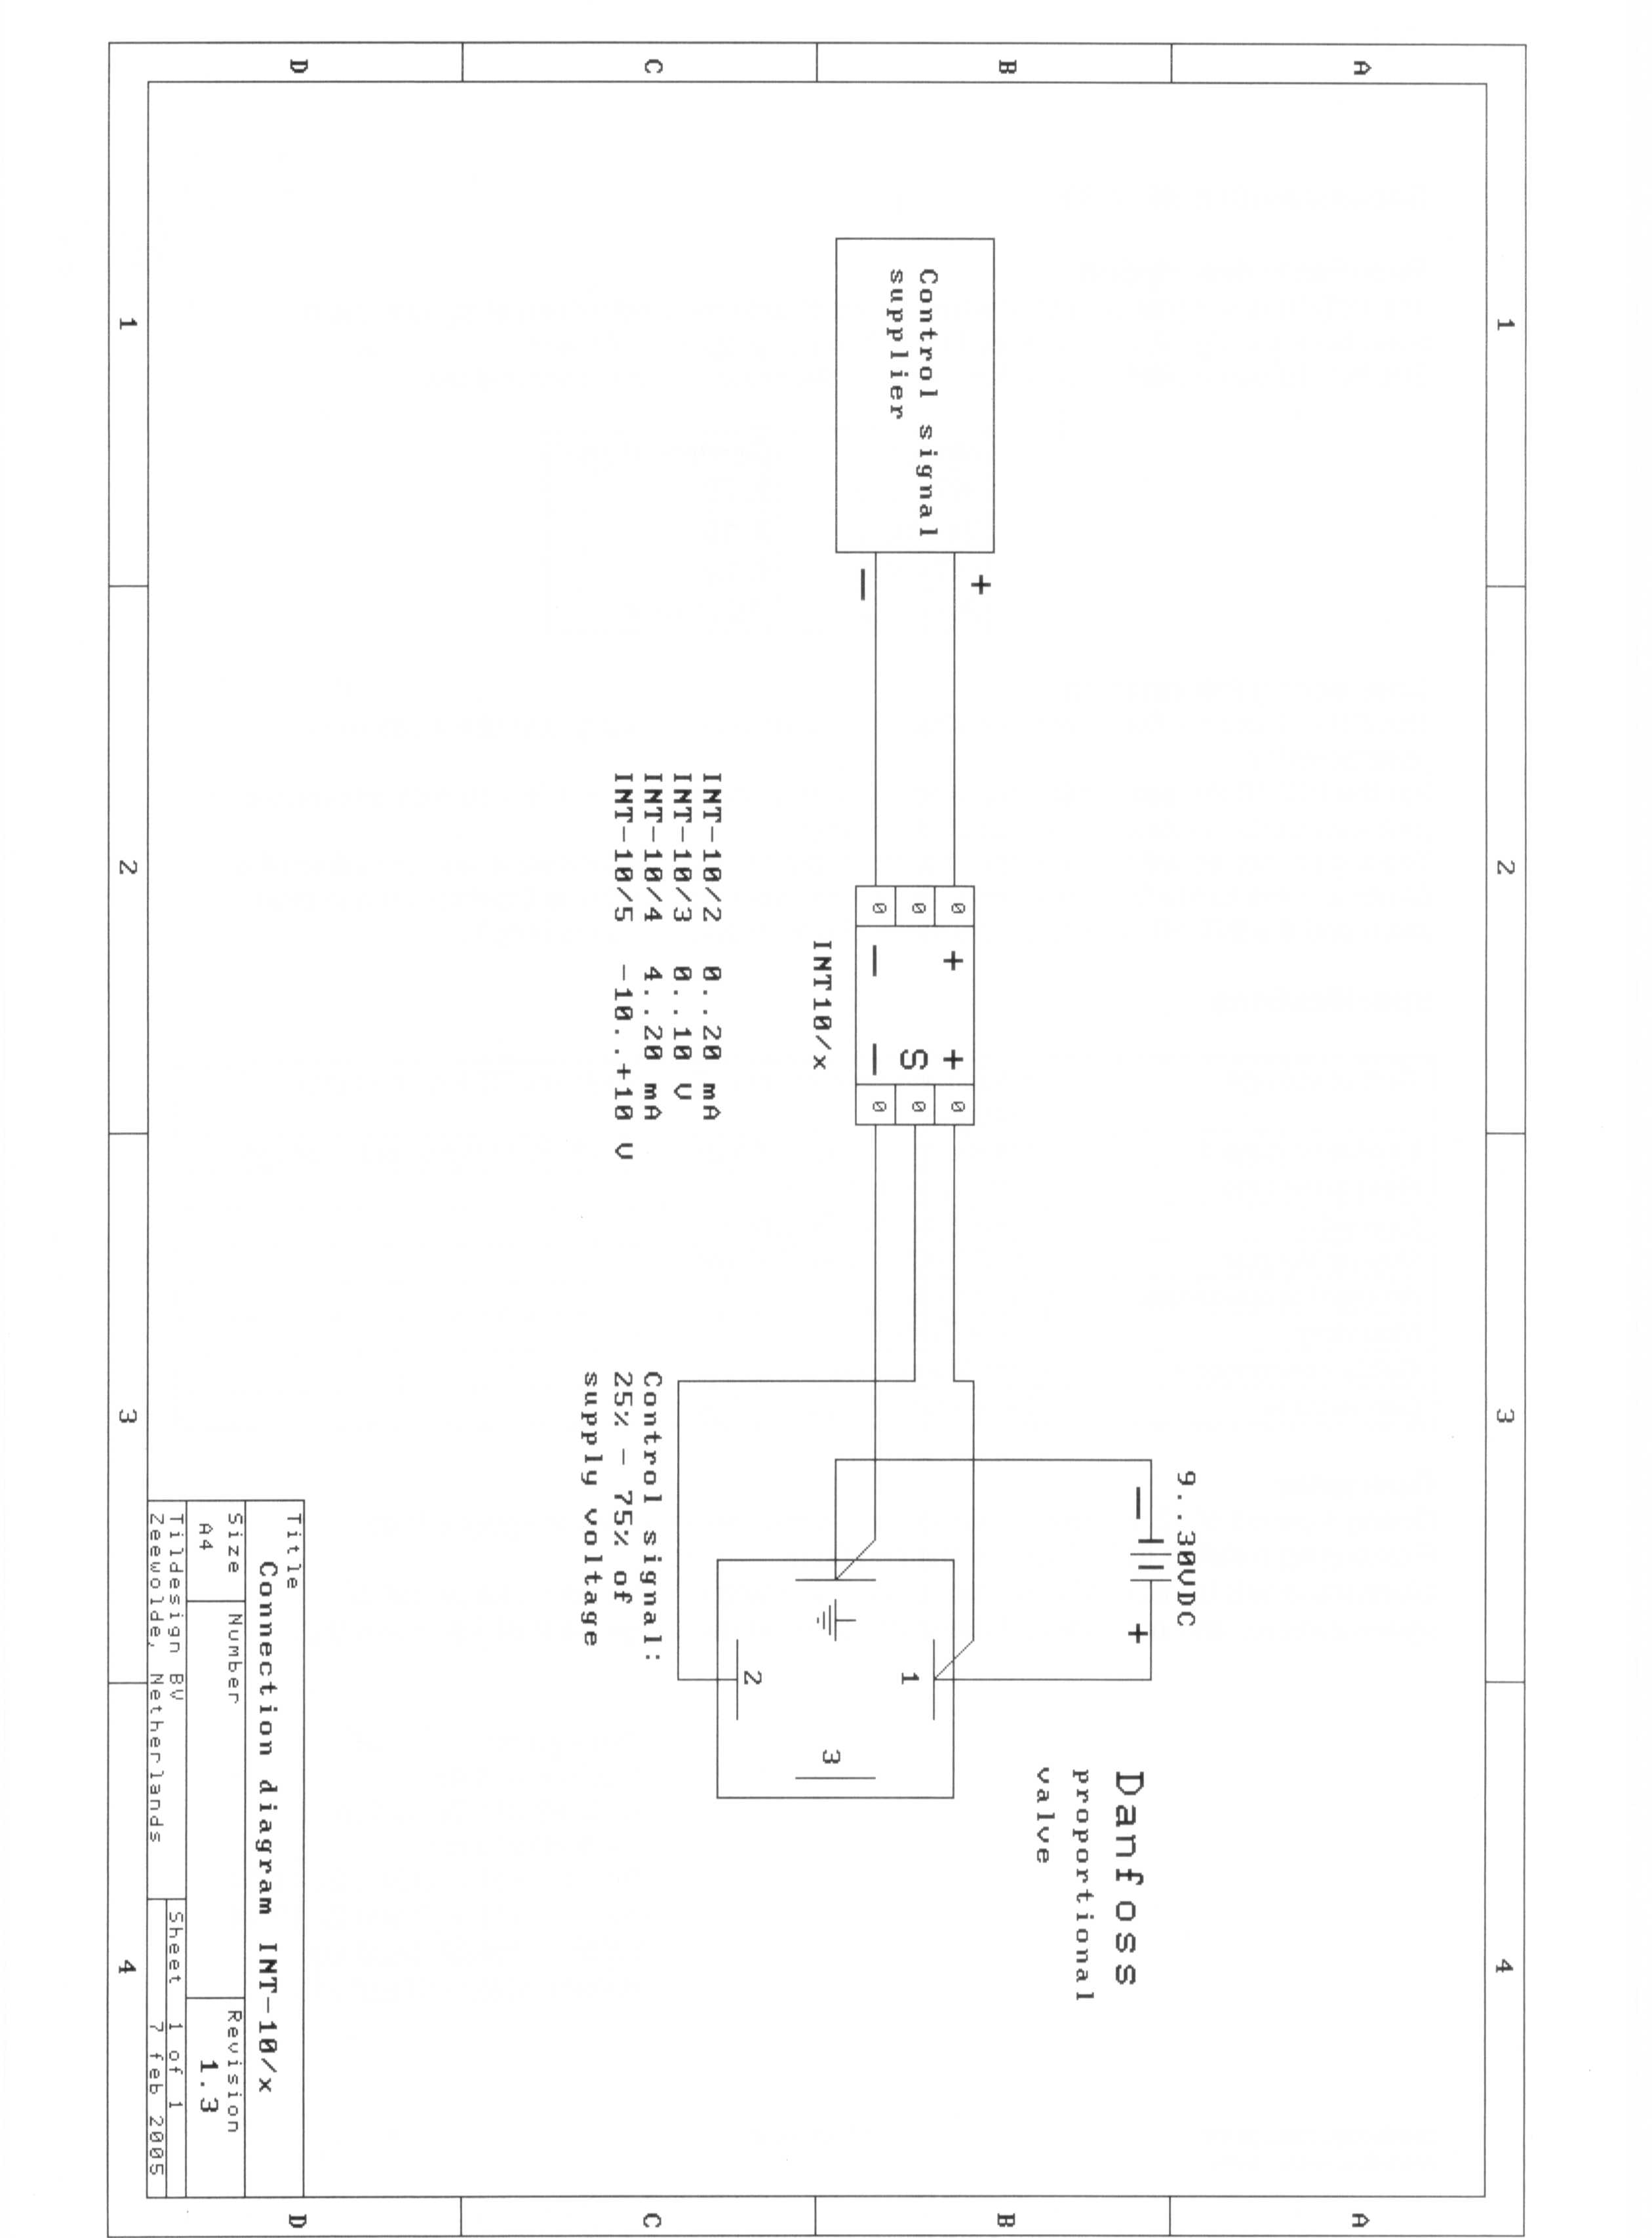 danfoss 3 port valve wiring diagram skeleton for 4th grade int 10 hydraulic control component pvg 32 the